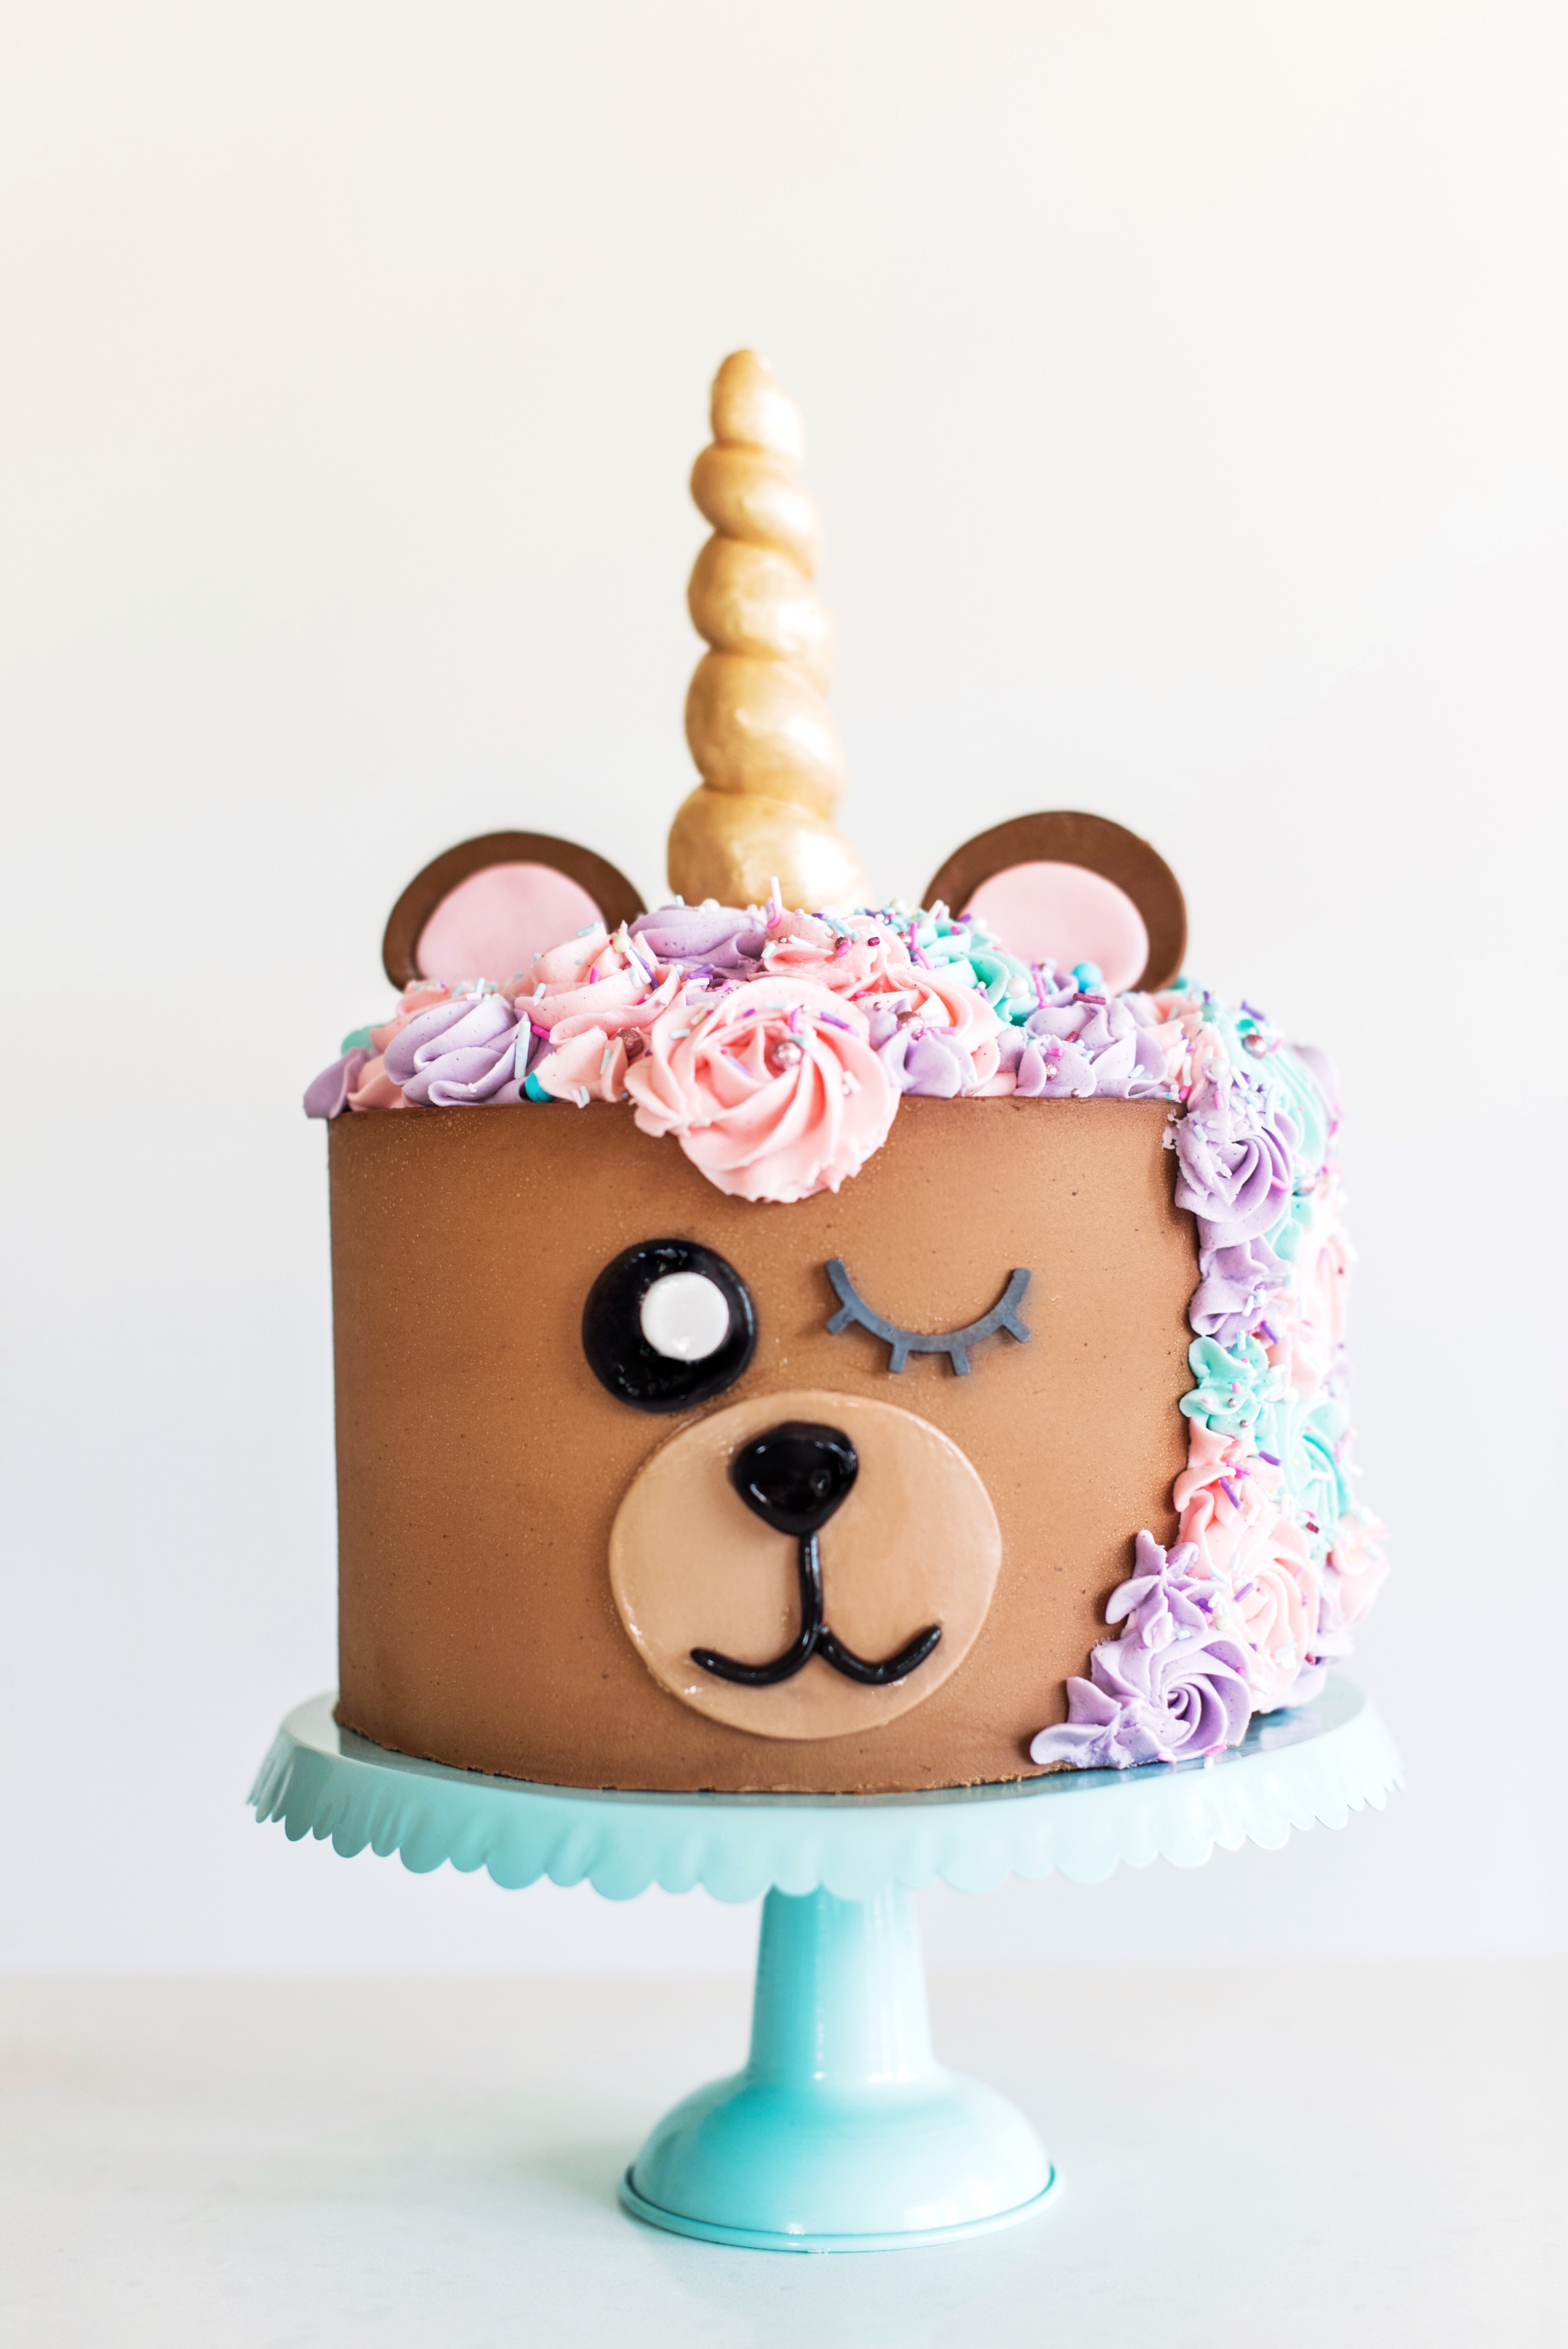 Admirable 4 Easy And Cute Animal Themed Cakes Cake By Courtney Funny Birthday Cards Online Alyptdamsfinfo